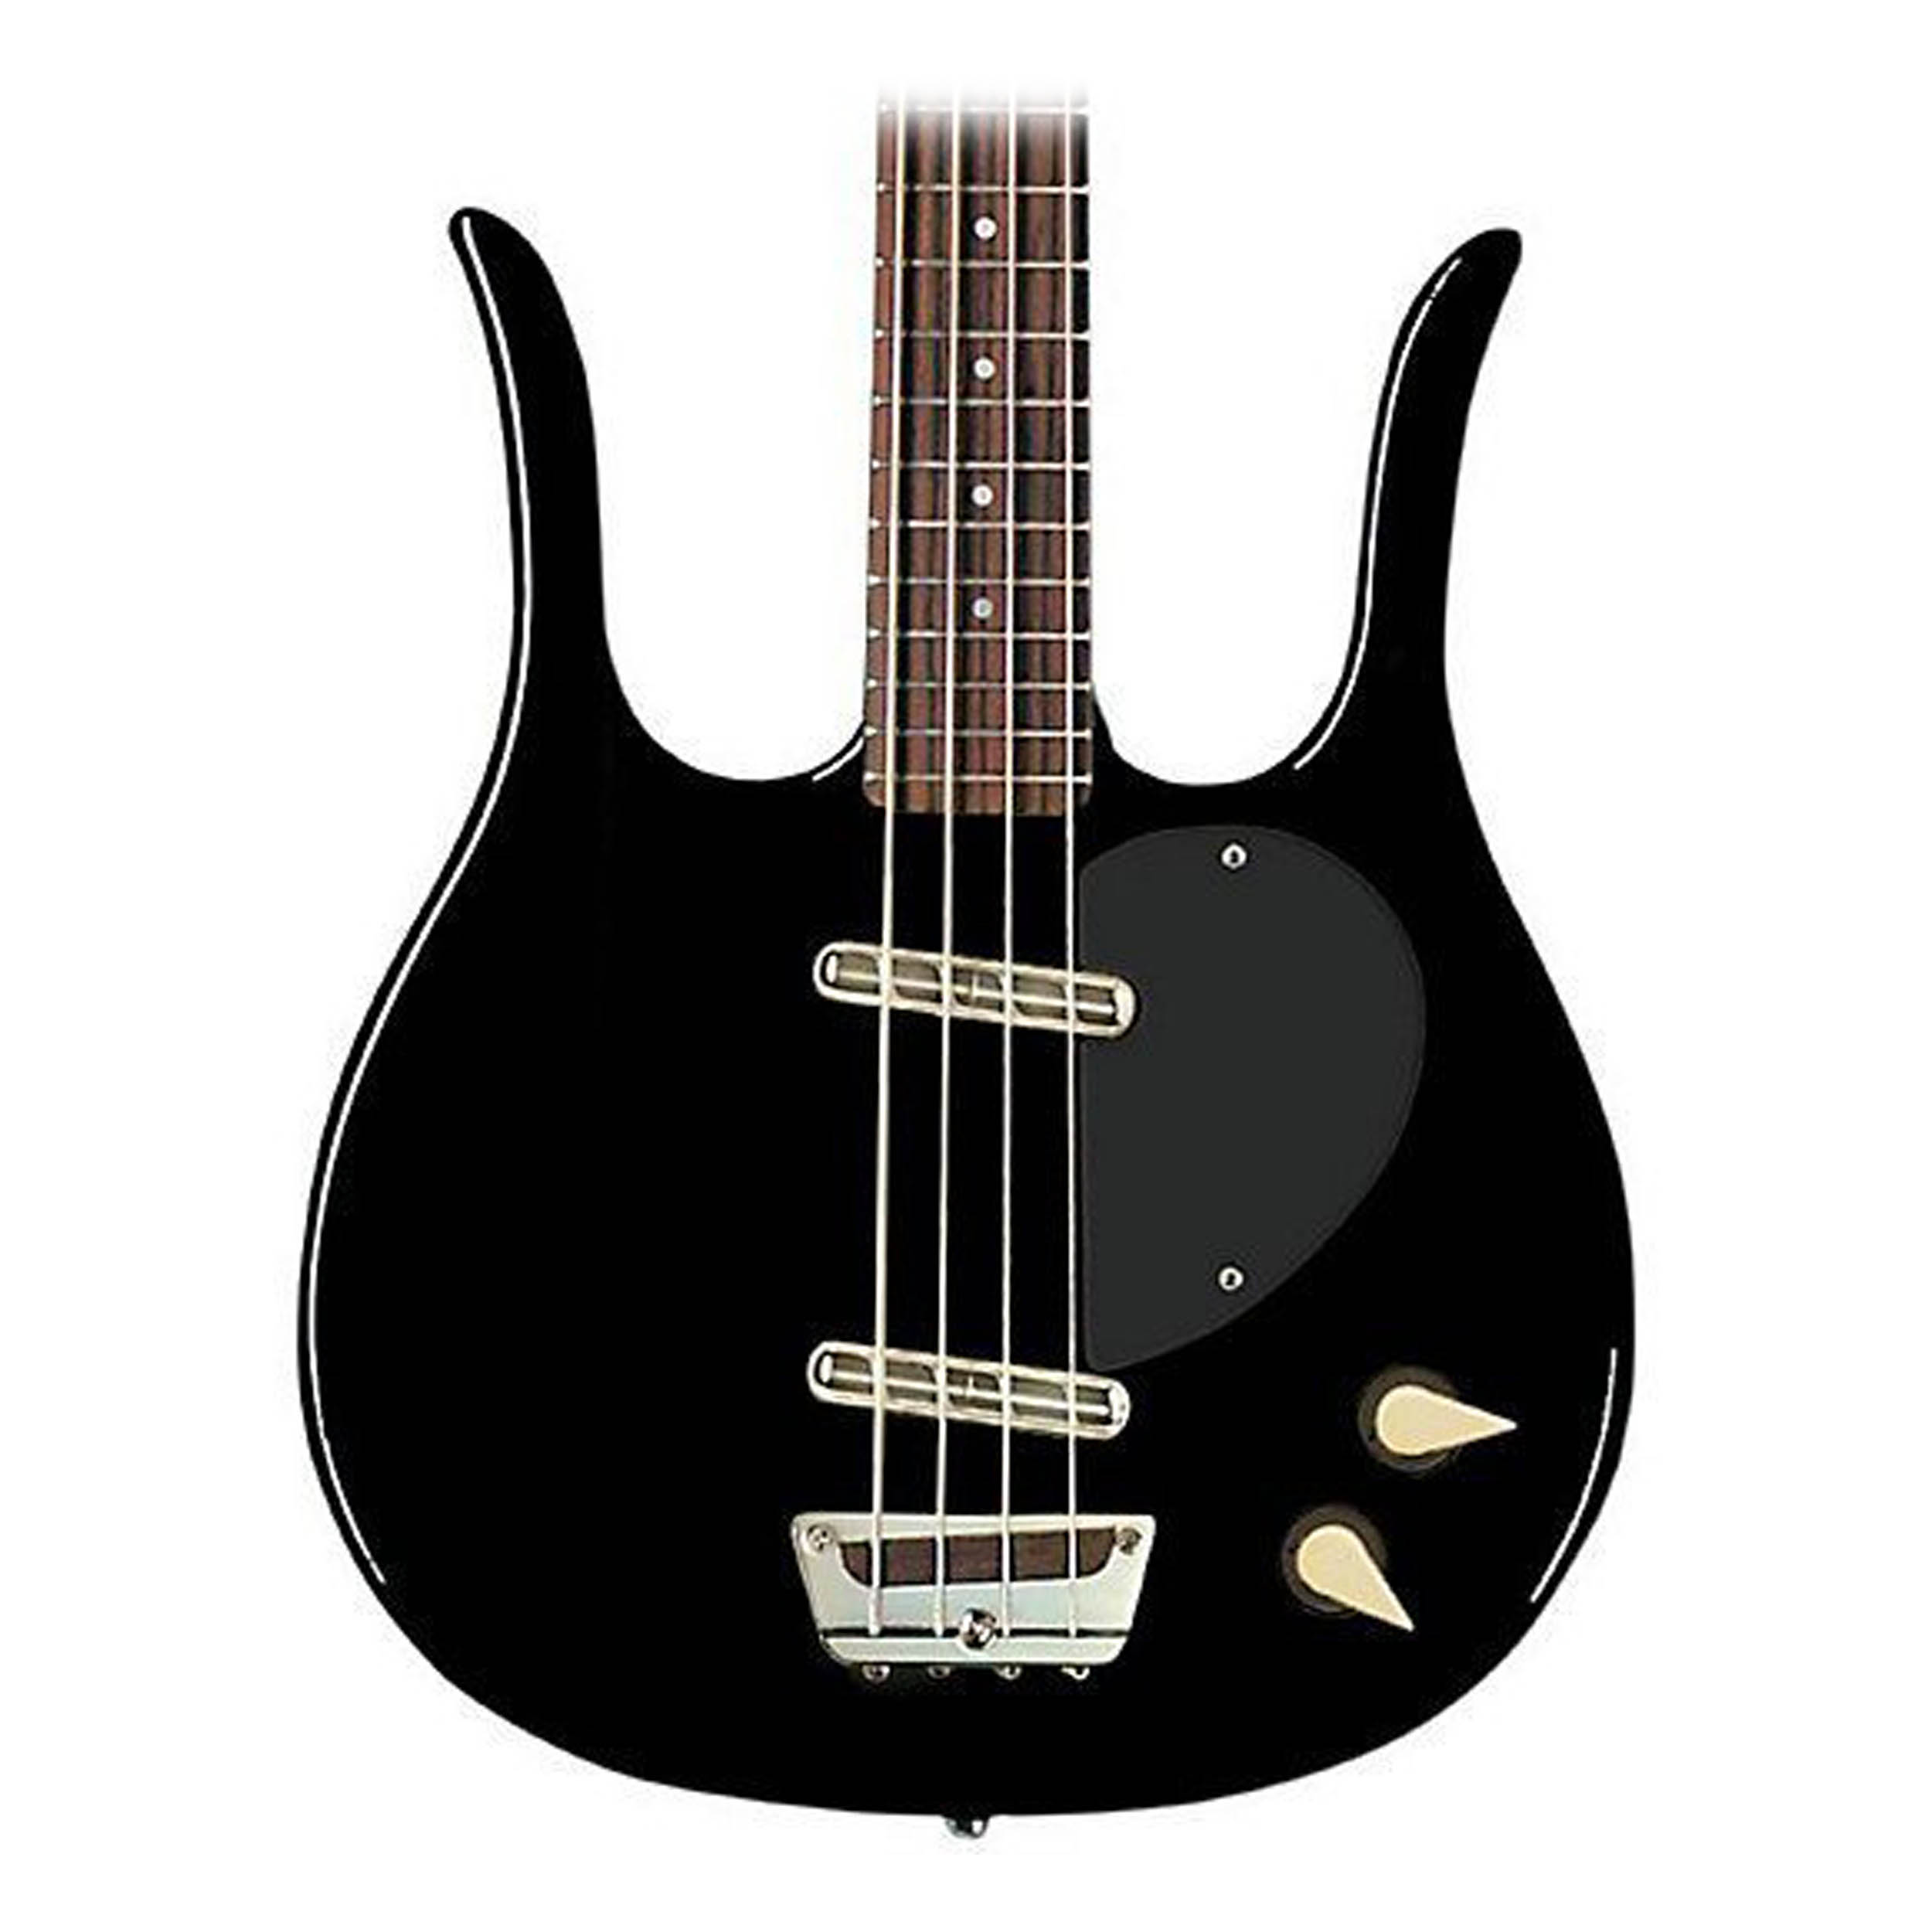 Danelectro Longhorn Electric Bass Guitar (Black) by Danelectro